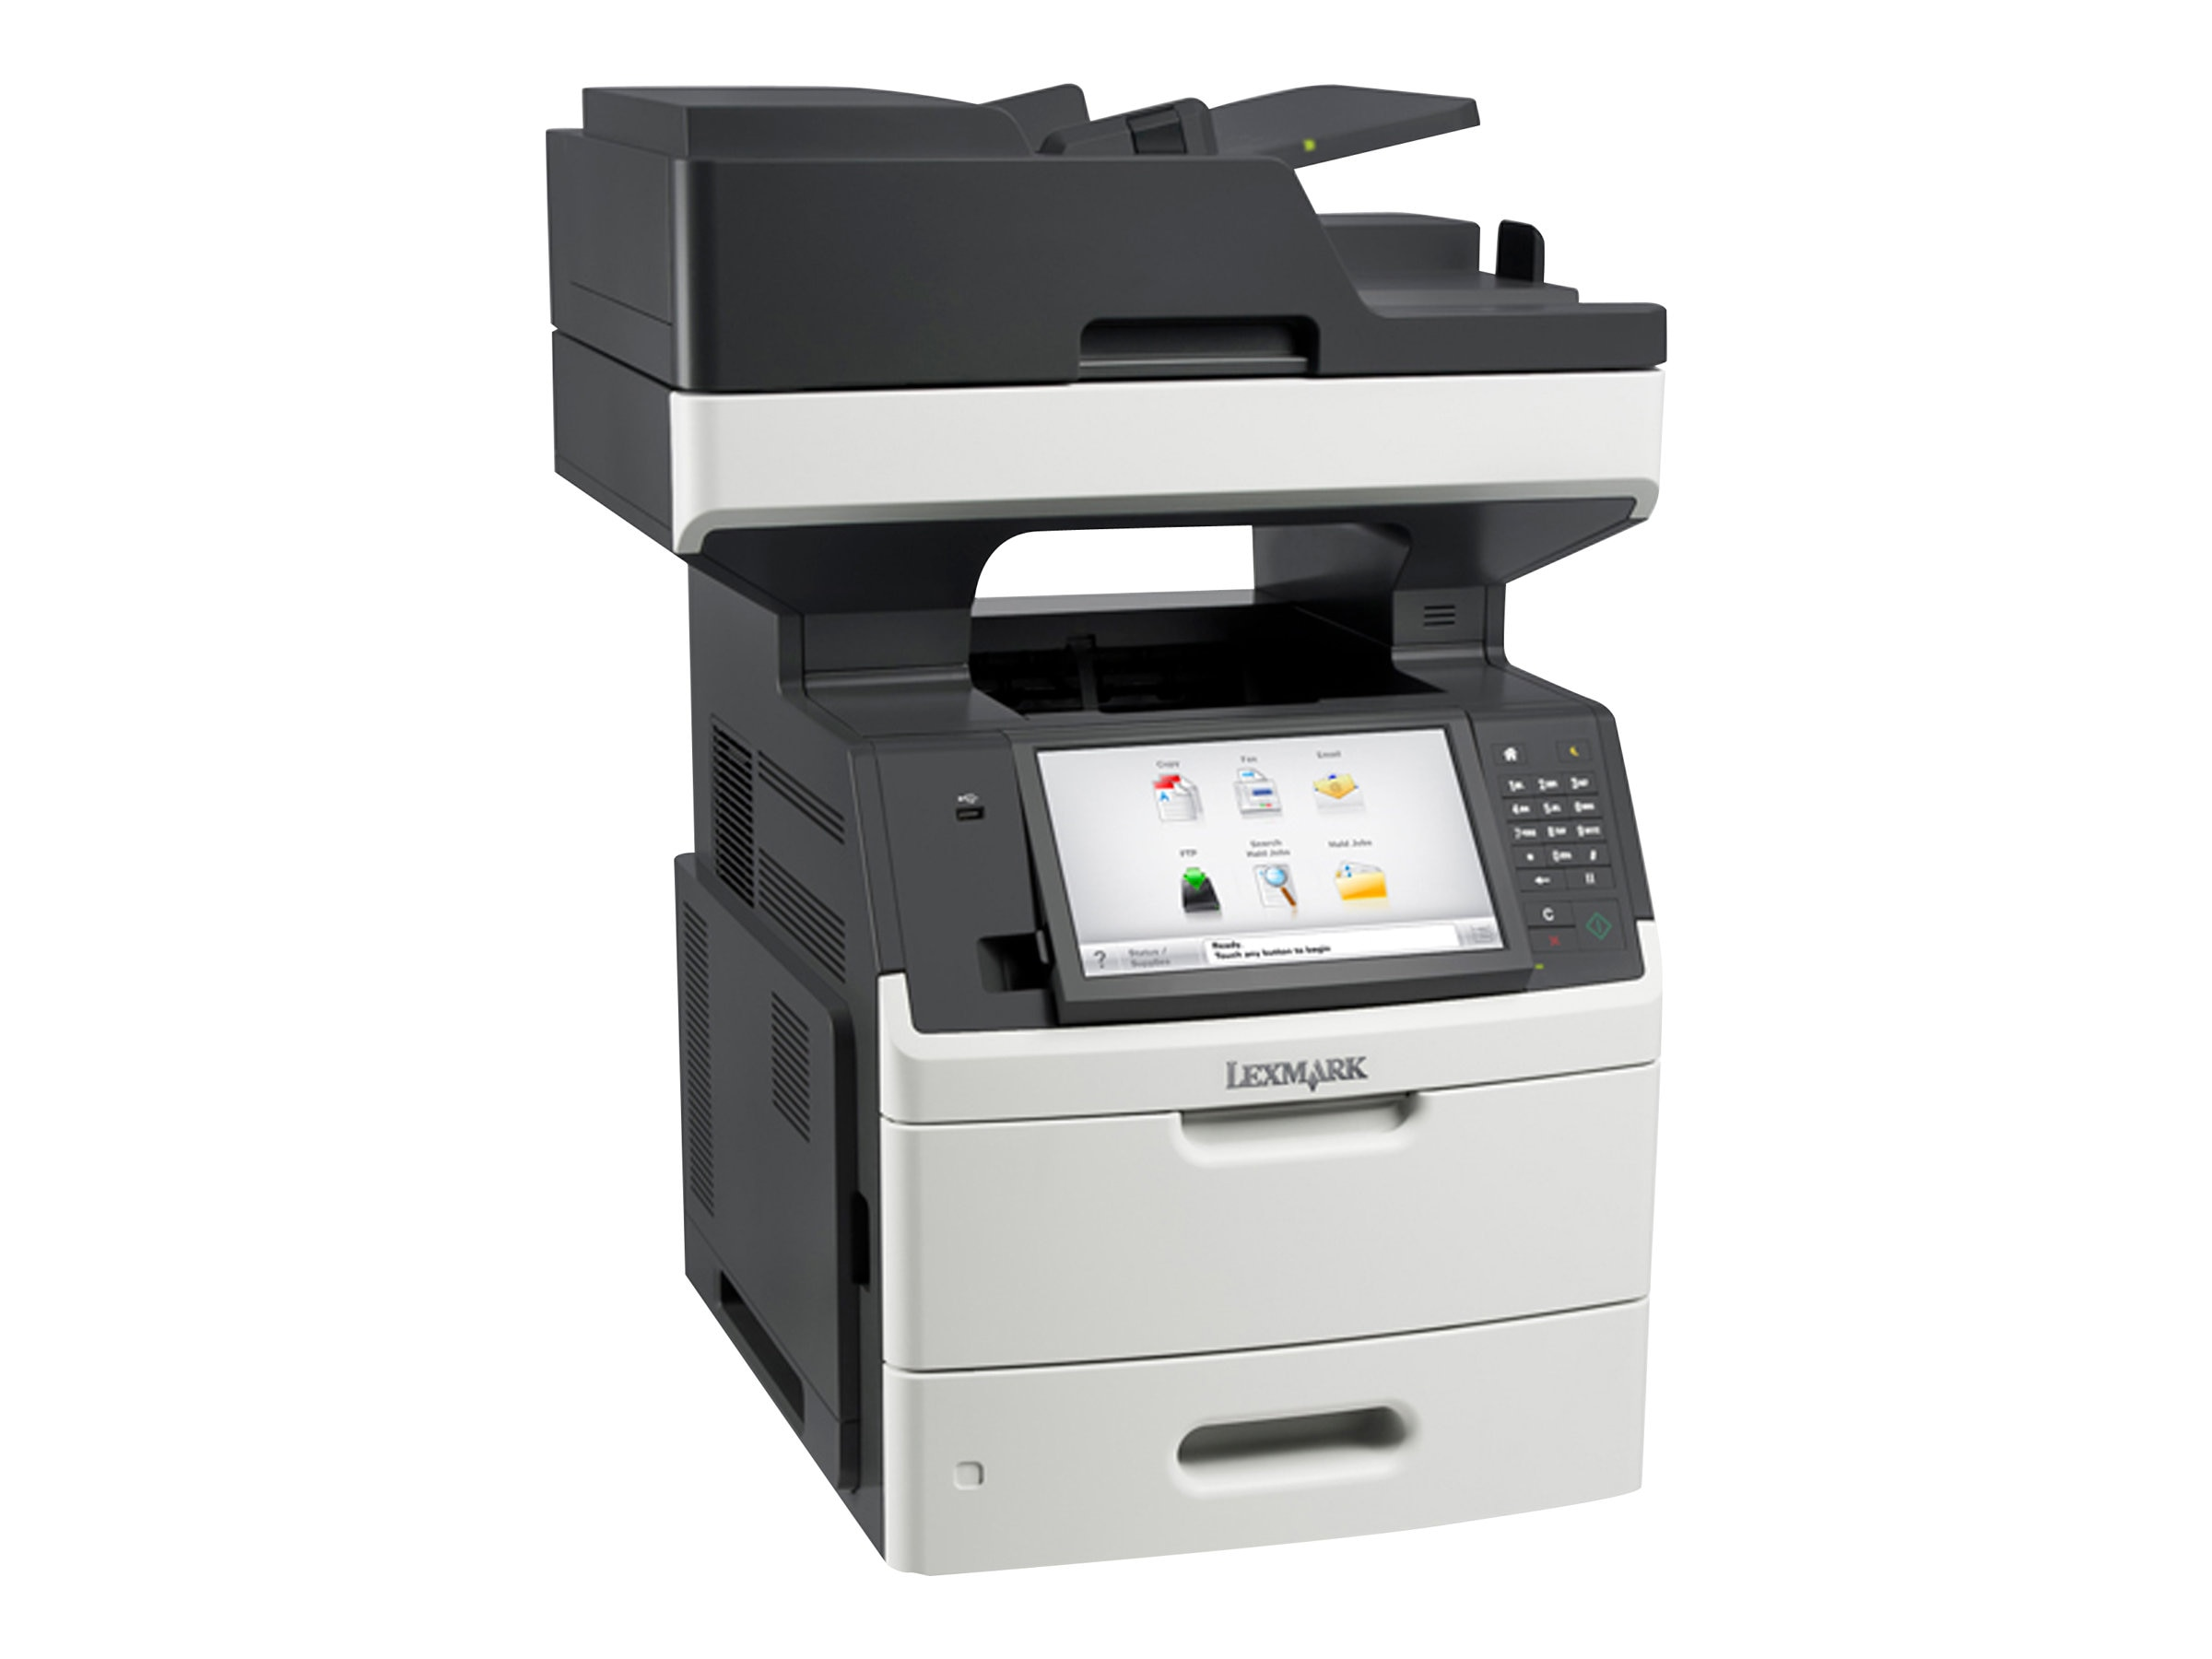 Lexmark MX711dhe Monochrome Laser Multifunction Printer, 24TT403